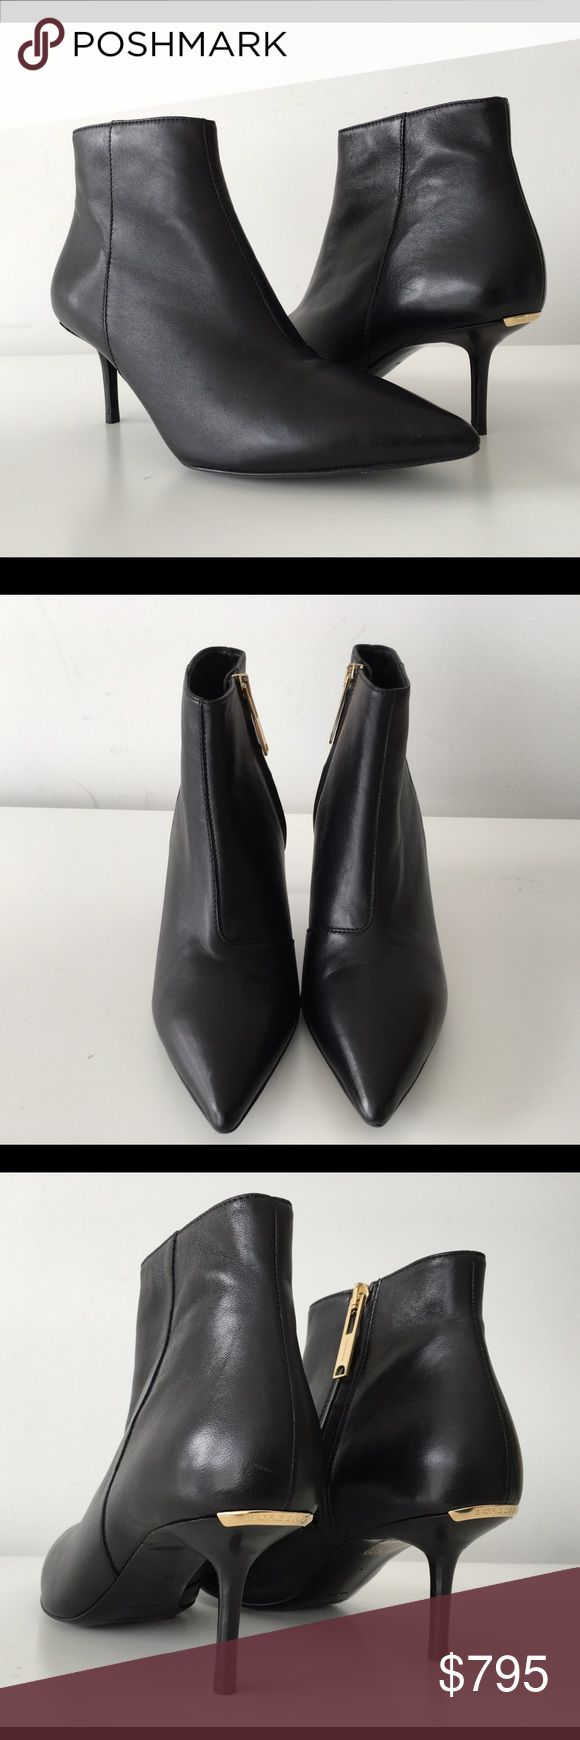 "BURBERRY MANOR BLACK LEATHER KITTEN HEEL BOOTS BURBERRY MANOR BLACK LEATHER KITTEN HEEL BOOTS, SIZE 36, HEIGHT HEEL 2.75"", MADE IN ITALY, POINTED TOE, LEATHER LINING AND SOLE, METAL LOGO DETAIL ON BACK, BRAND NEW WITH BOX AND DUST BAG Burberry Shoes Ankle Boots & Booties"